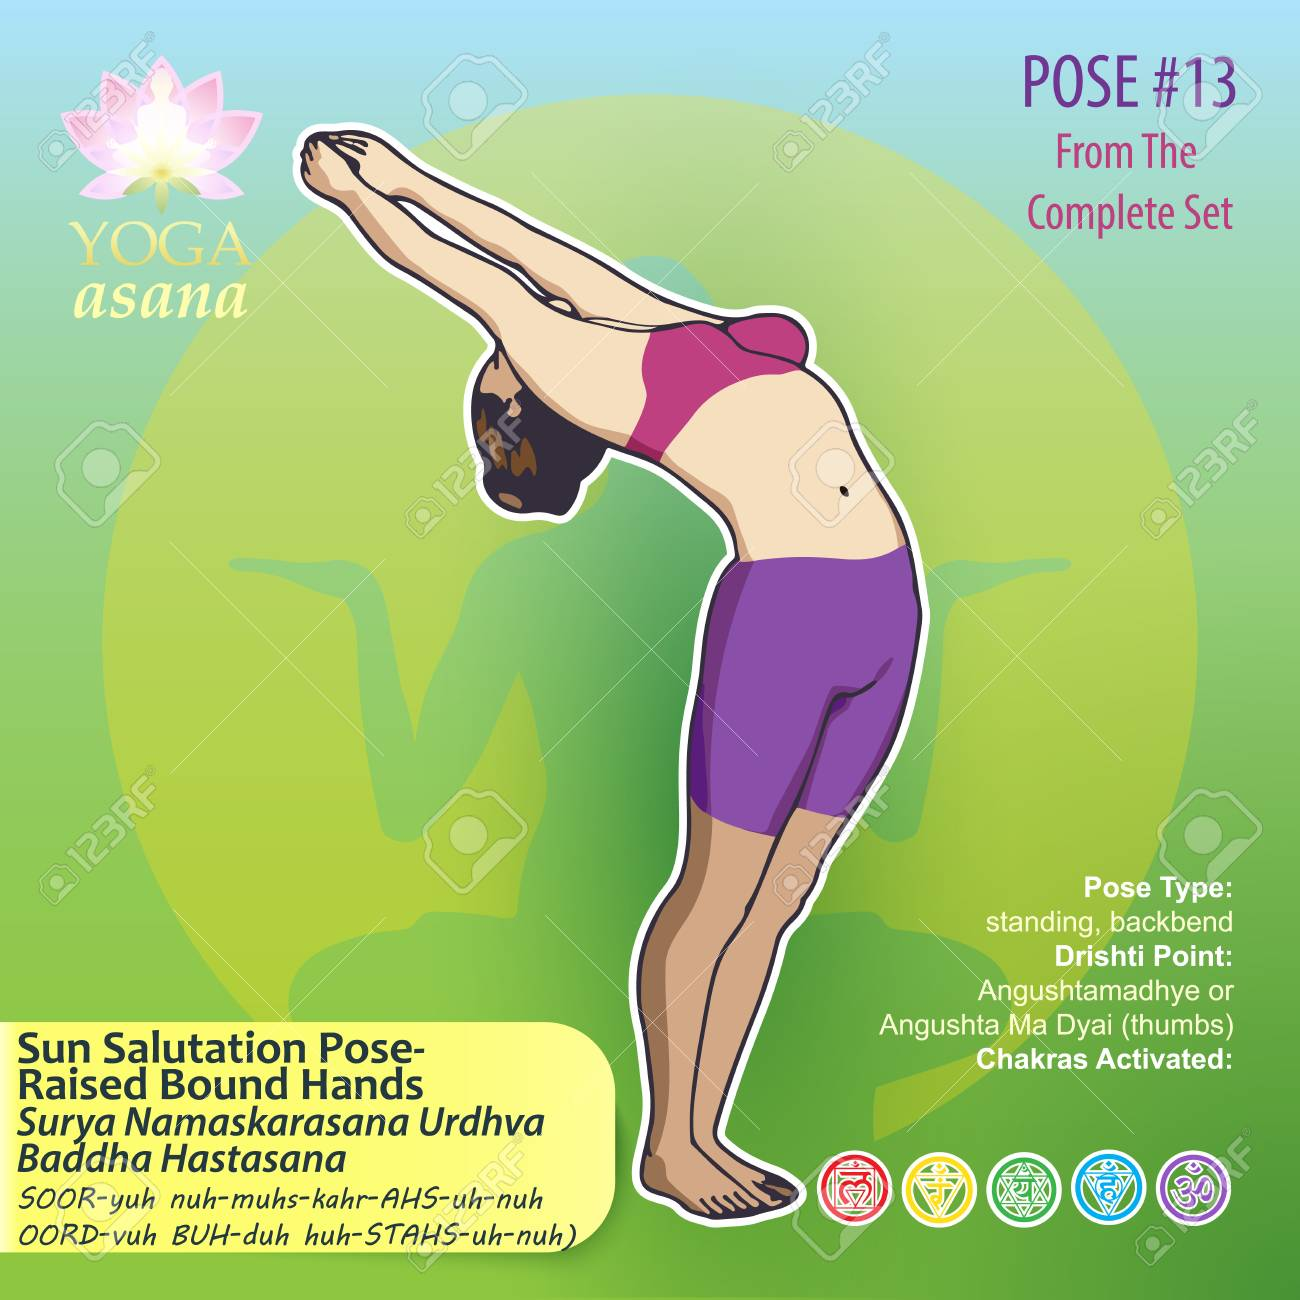 Iillustration Of Yoga Exercises With Full Text Description Names And Symbols The Involved Chakras